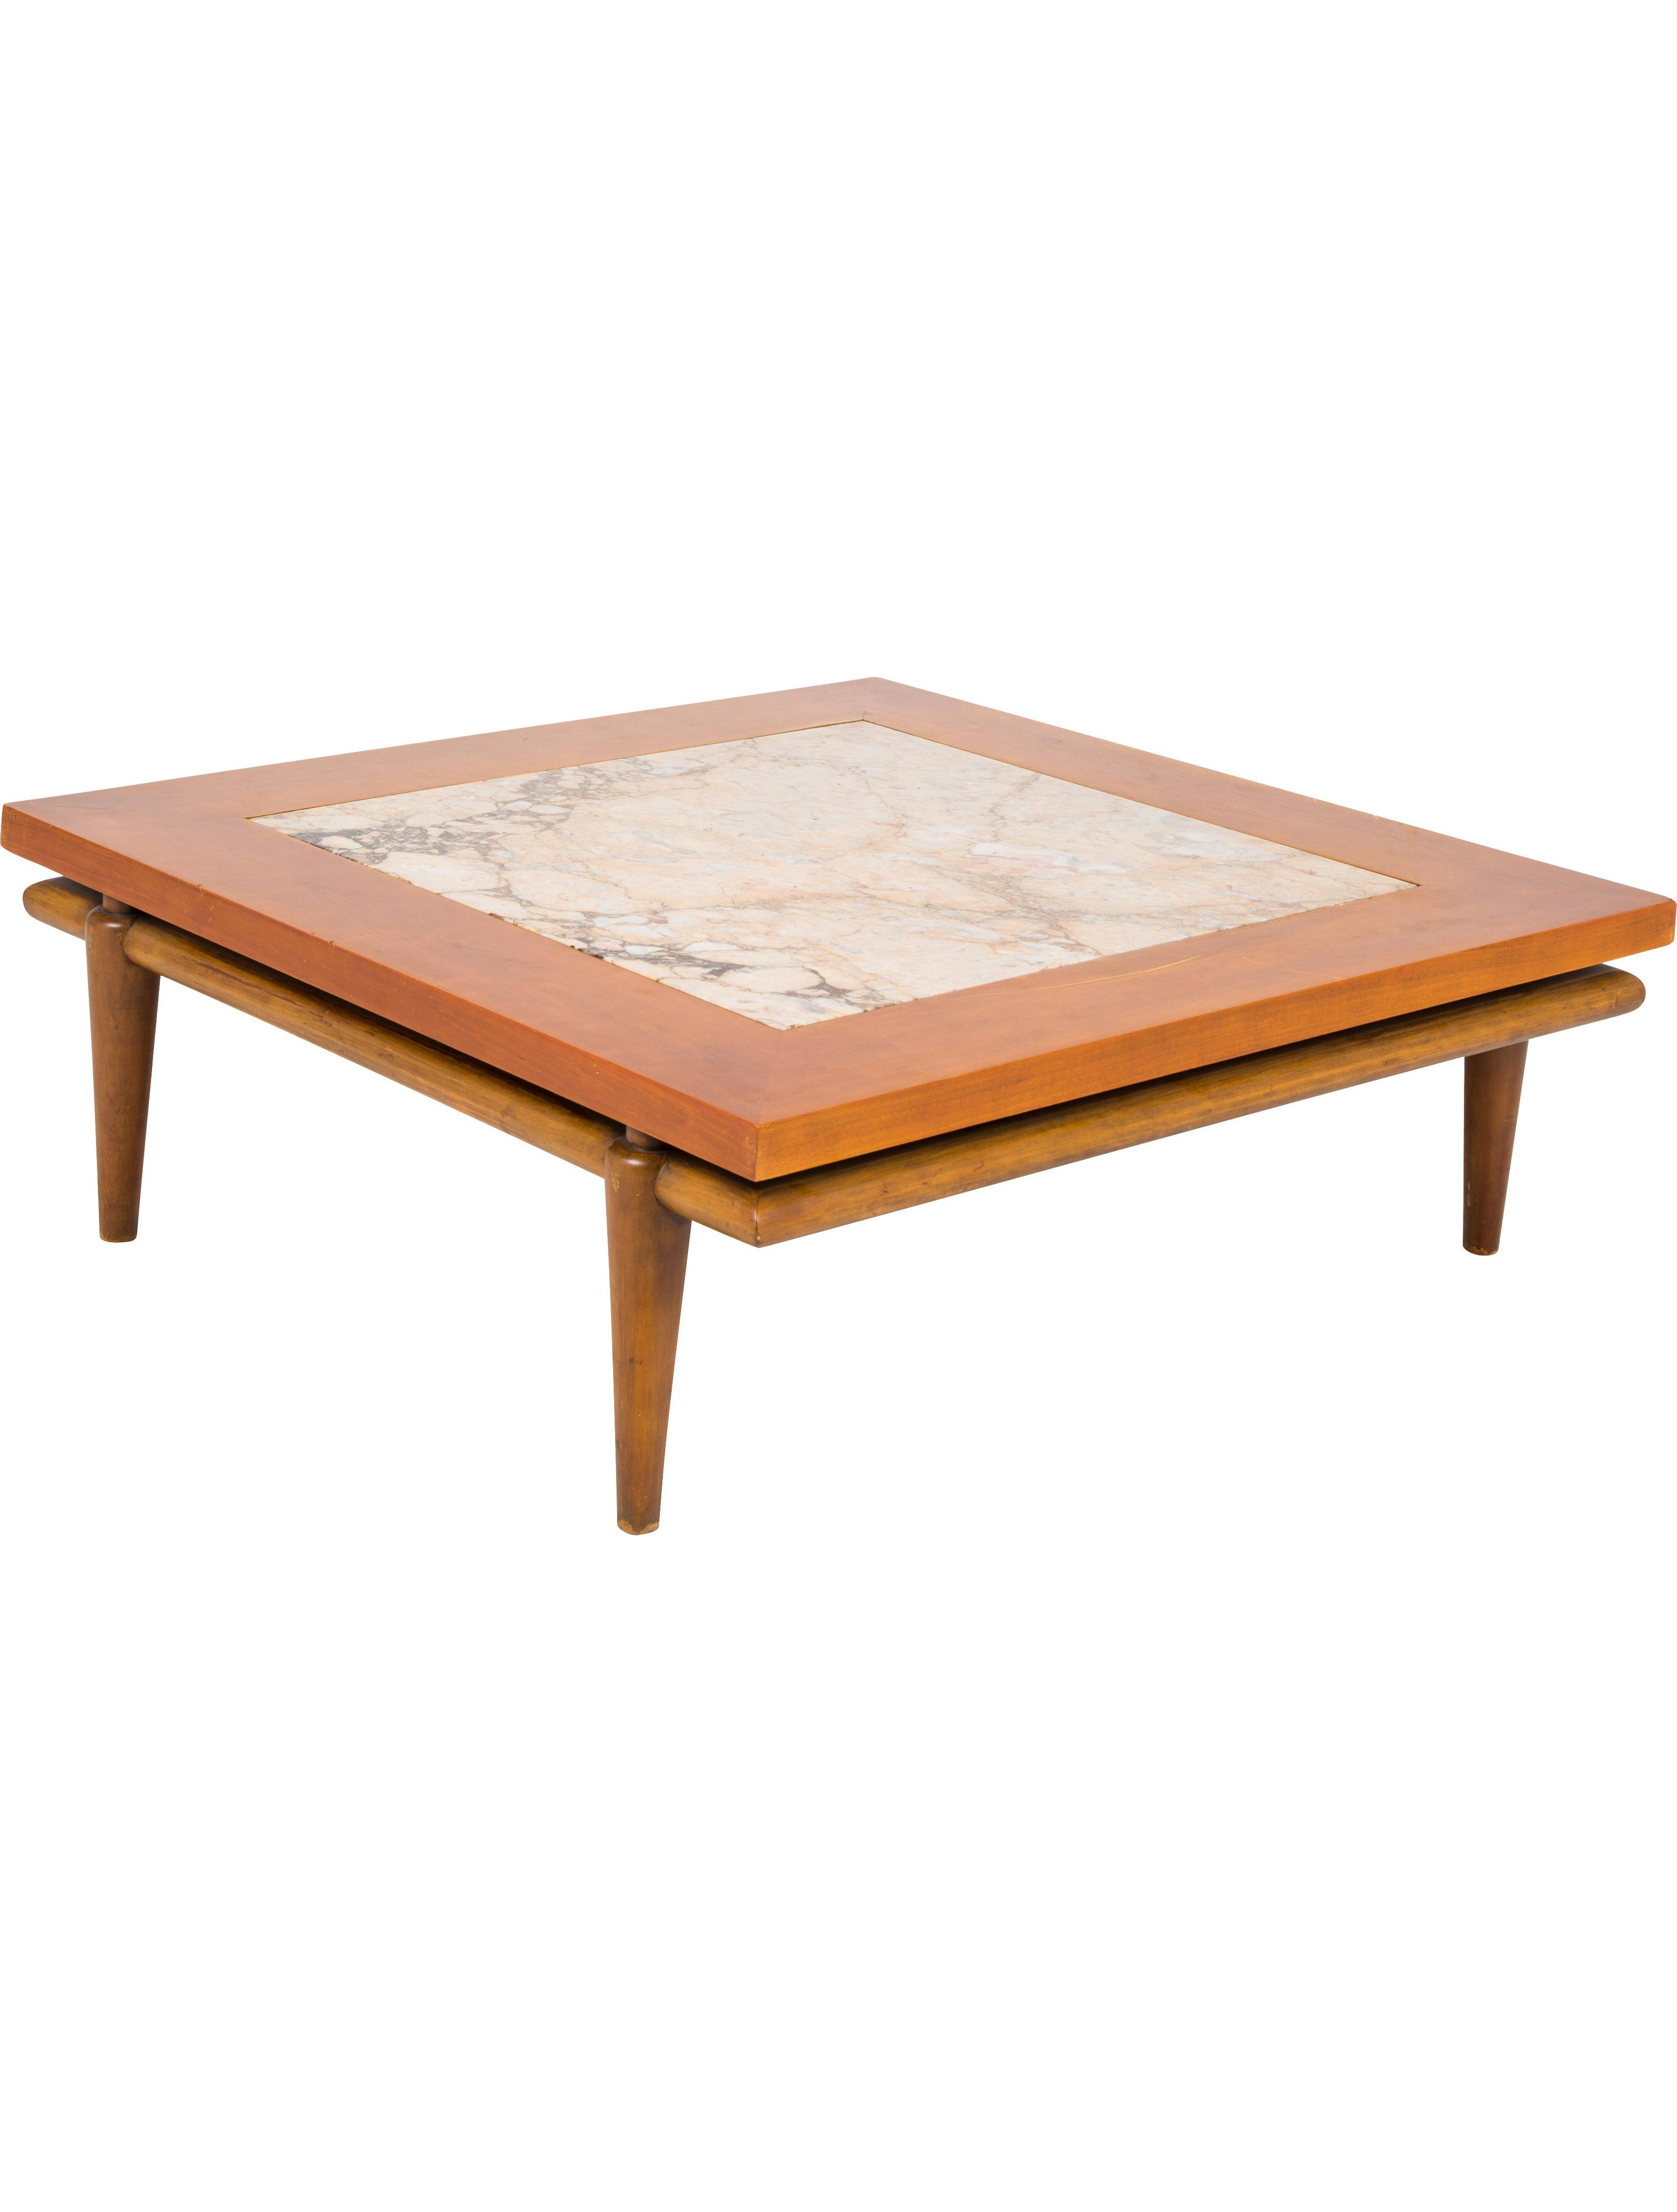 Wood John Widdicomb Coffee Table With Marble Inlay Tapered